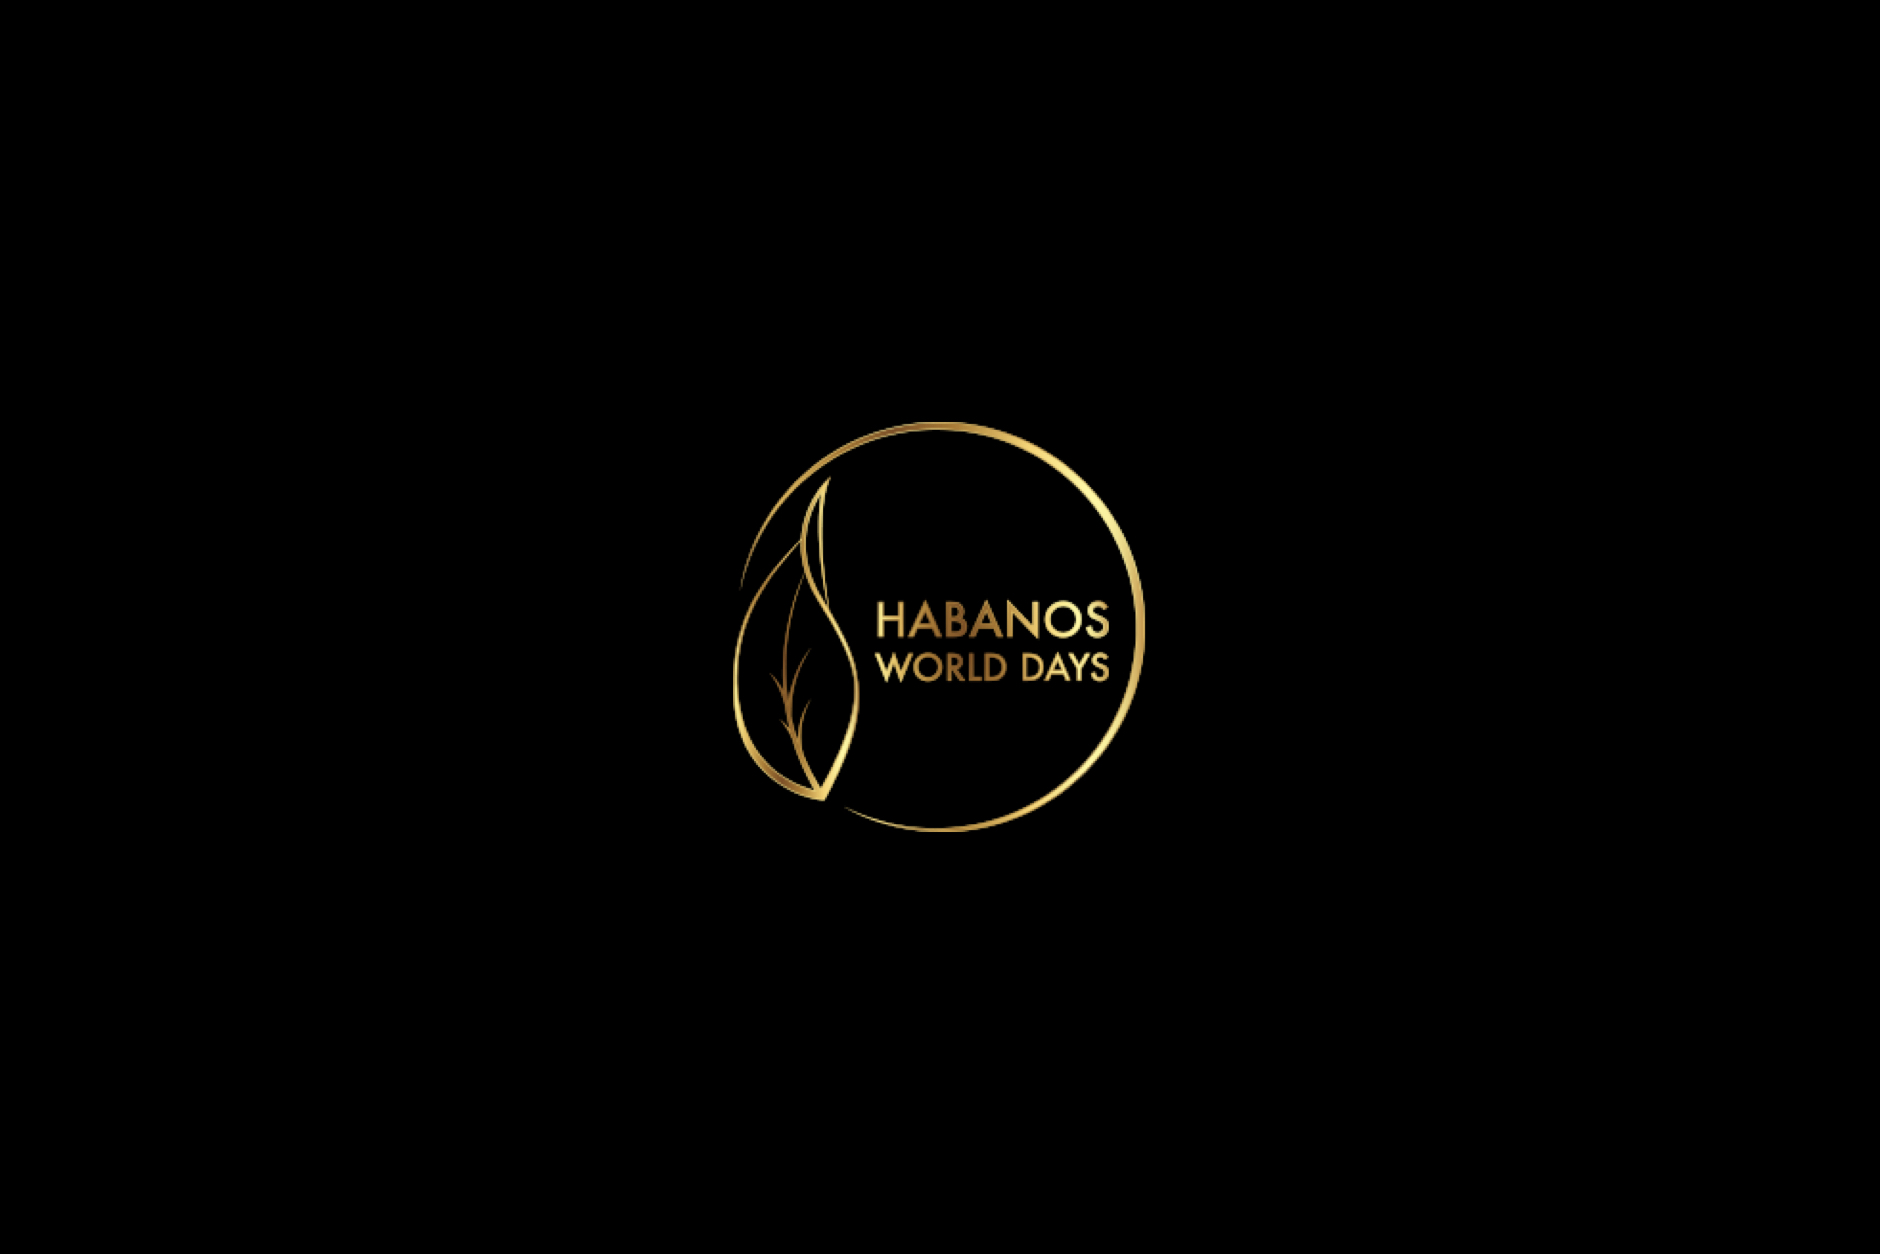 Habanos-World-Days-Logo